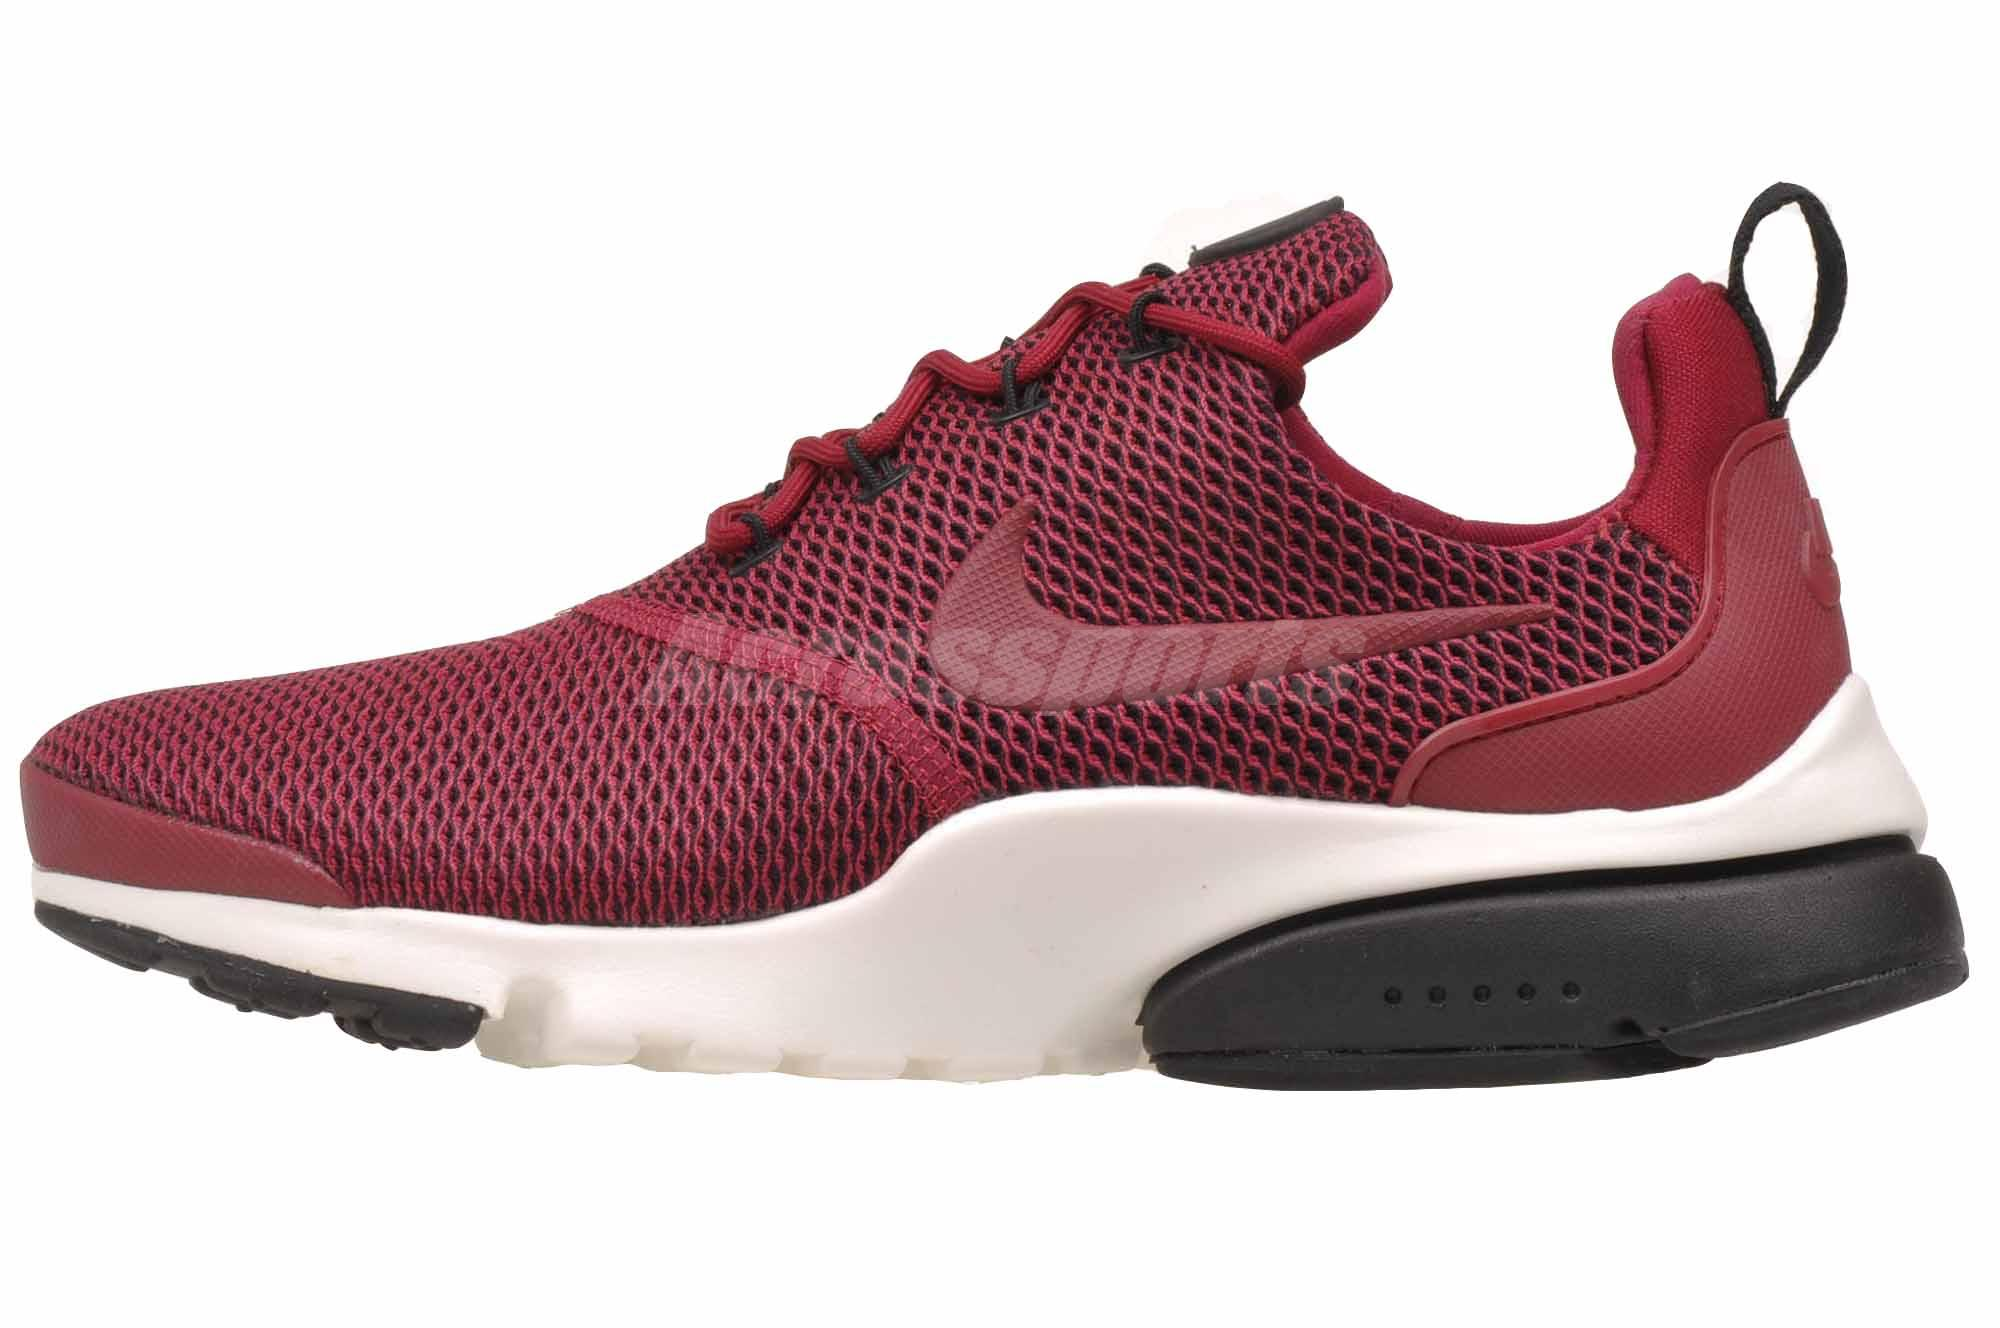 new style a3586 7acdb Details about Nike Wmns Presto Fly SE Running Womens Shoes Noble Red  910570-601